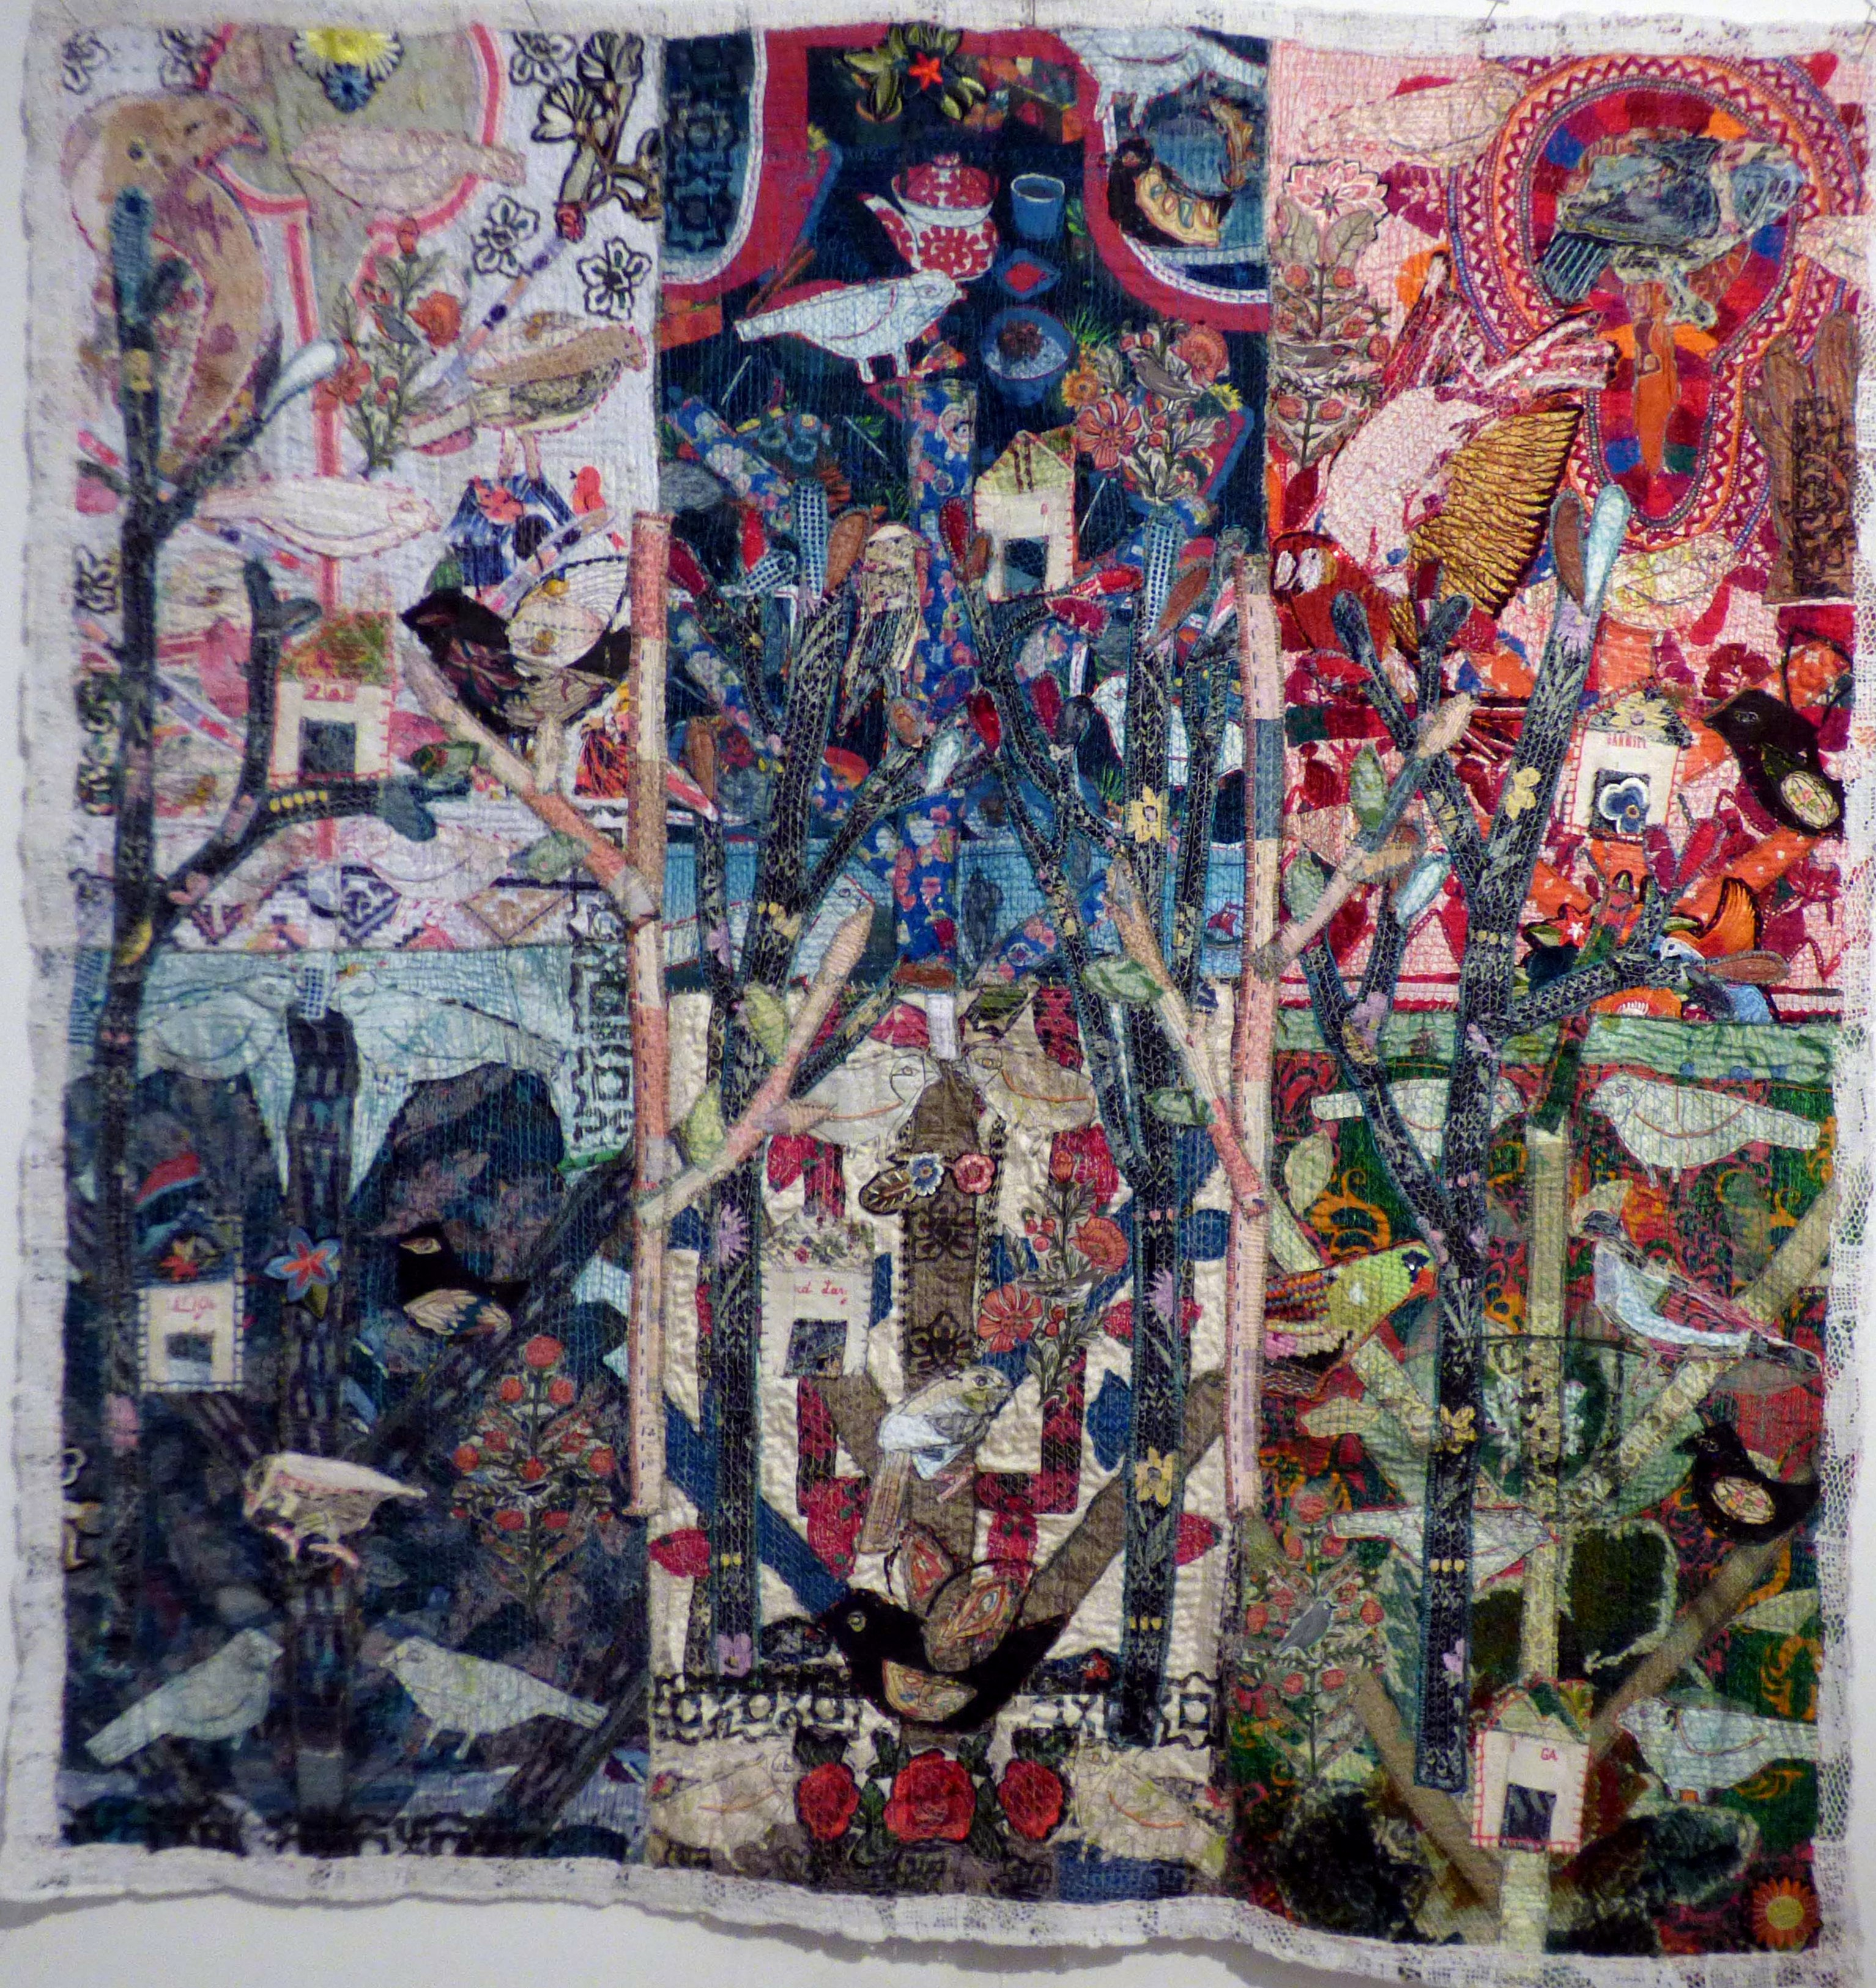 WORLD BIRD TREE, mixed media textiles by Anne Kelly, Ruthin Craft Gallery, July 2021